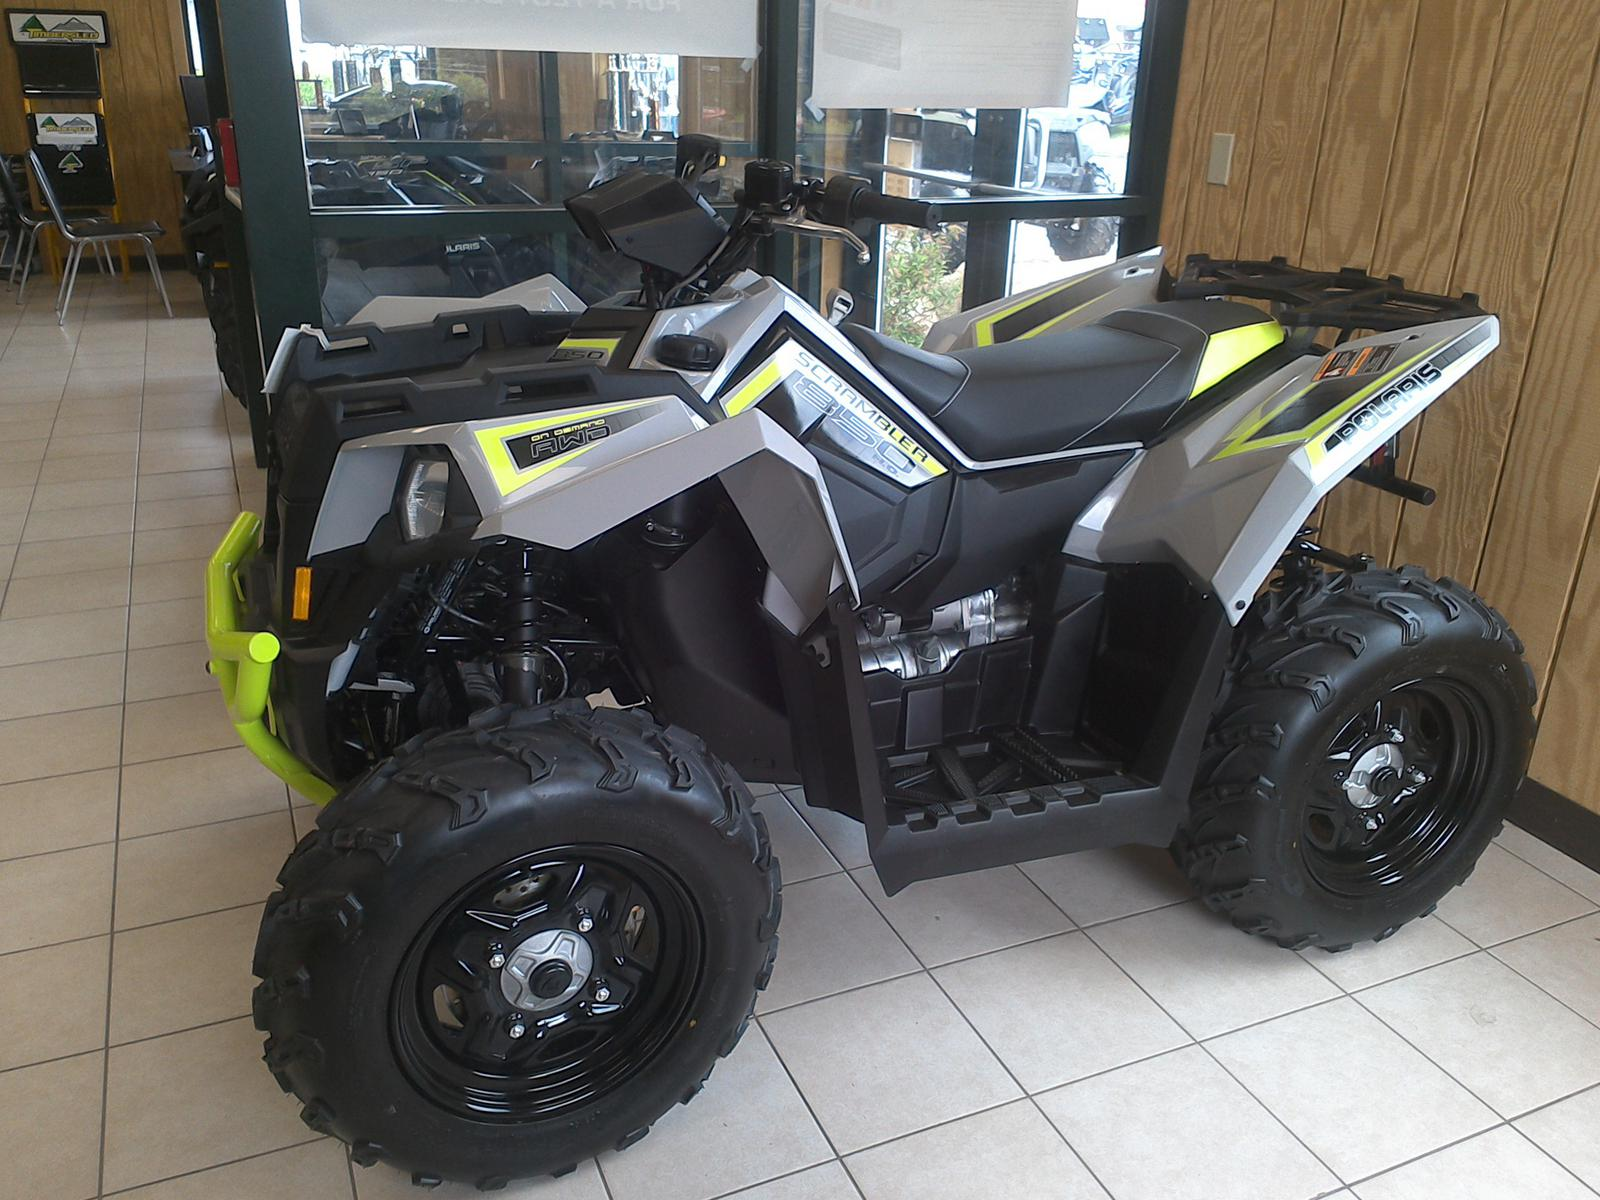 2019 polaris industries scrambler� 850 - ghost gray